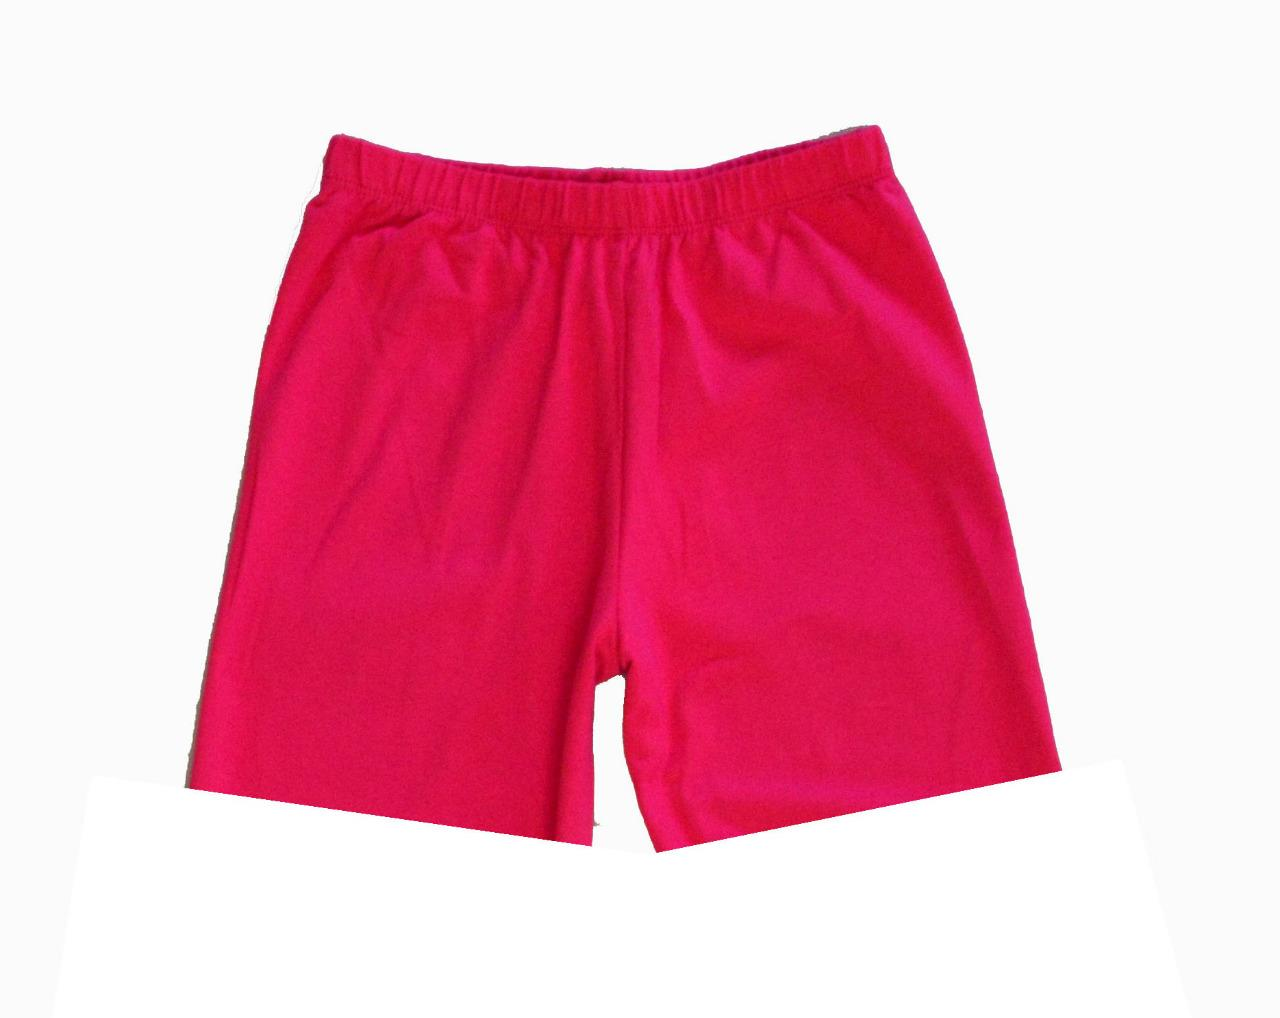 Shop Old Navy's Mid-Length Bike Shorts for Girls: Elasticized waistband.,Soft, lightweight jersey, with comfortable stretch.,Lotus Orange Neon & Gold Foil Palm .